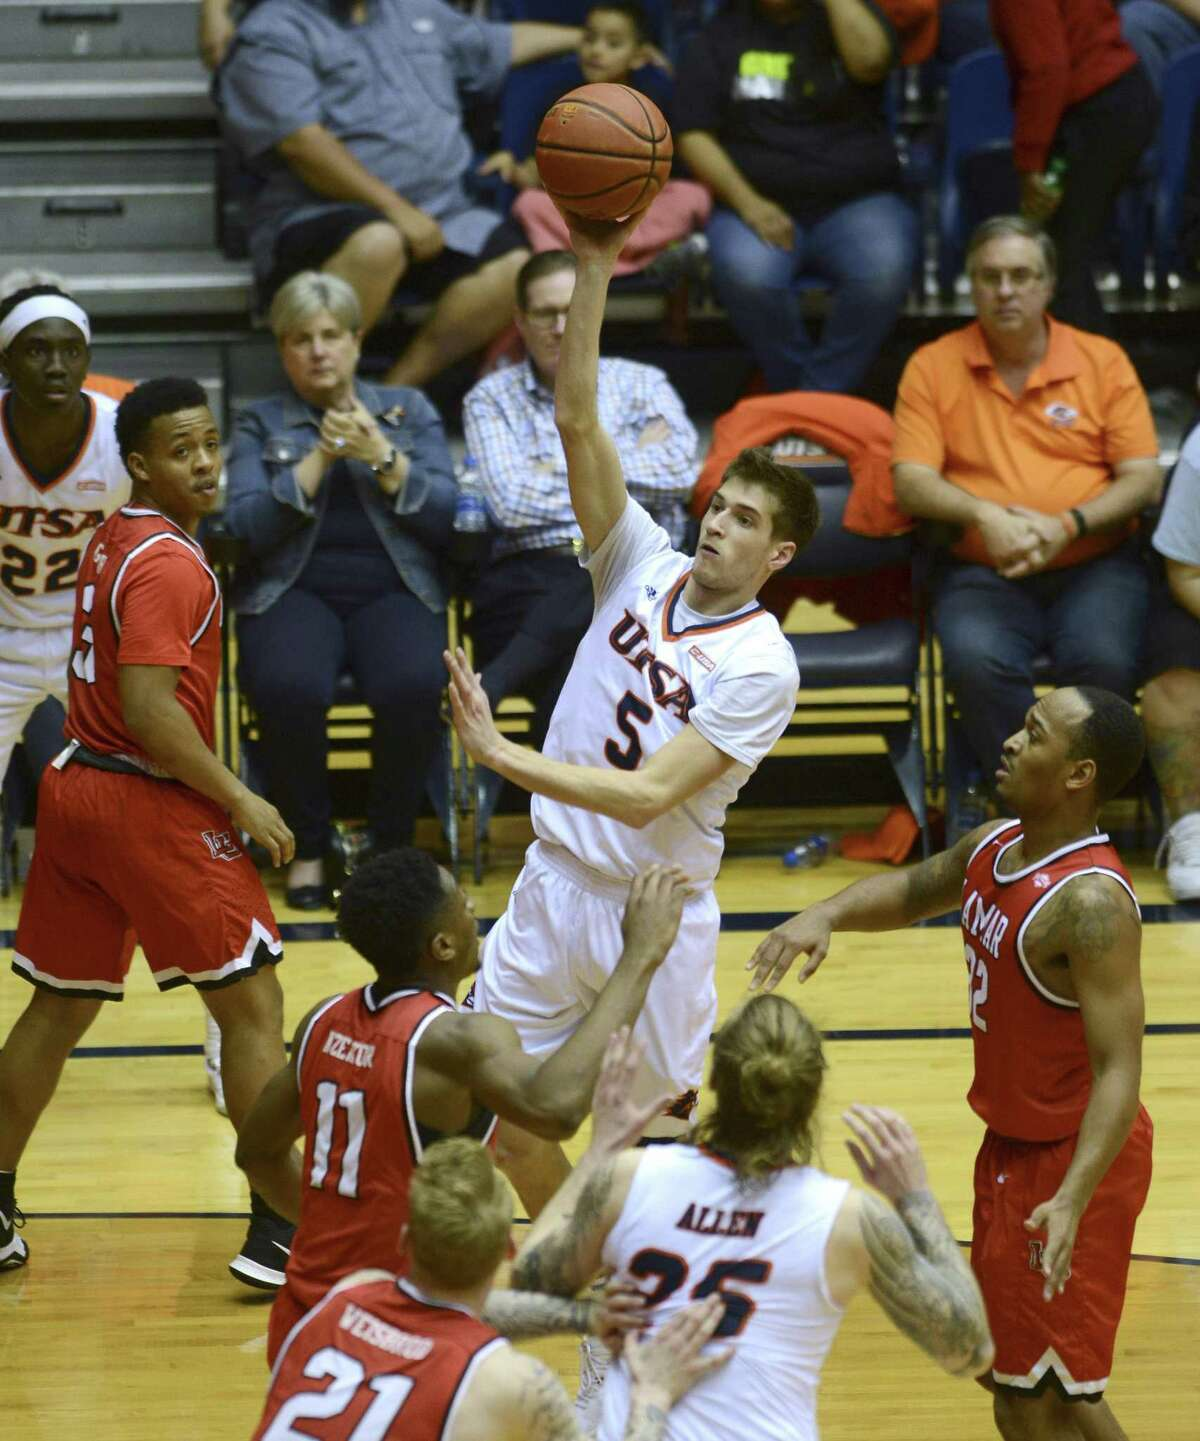 Giovanni De Nicolao of UTSA shoots and scores against Lamar during second-half CollegeInsider.com tournament action in the UTSA Convocation Center on Wednesday, March 14, 2018.